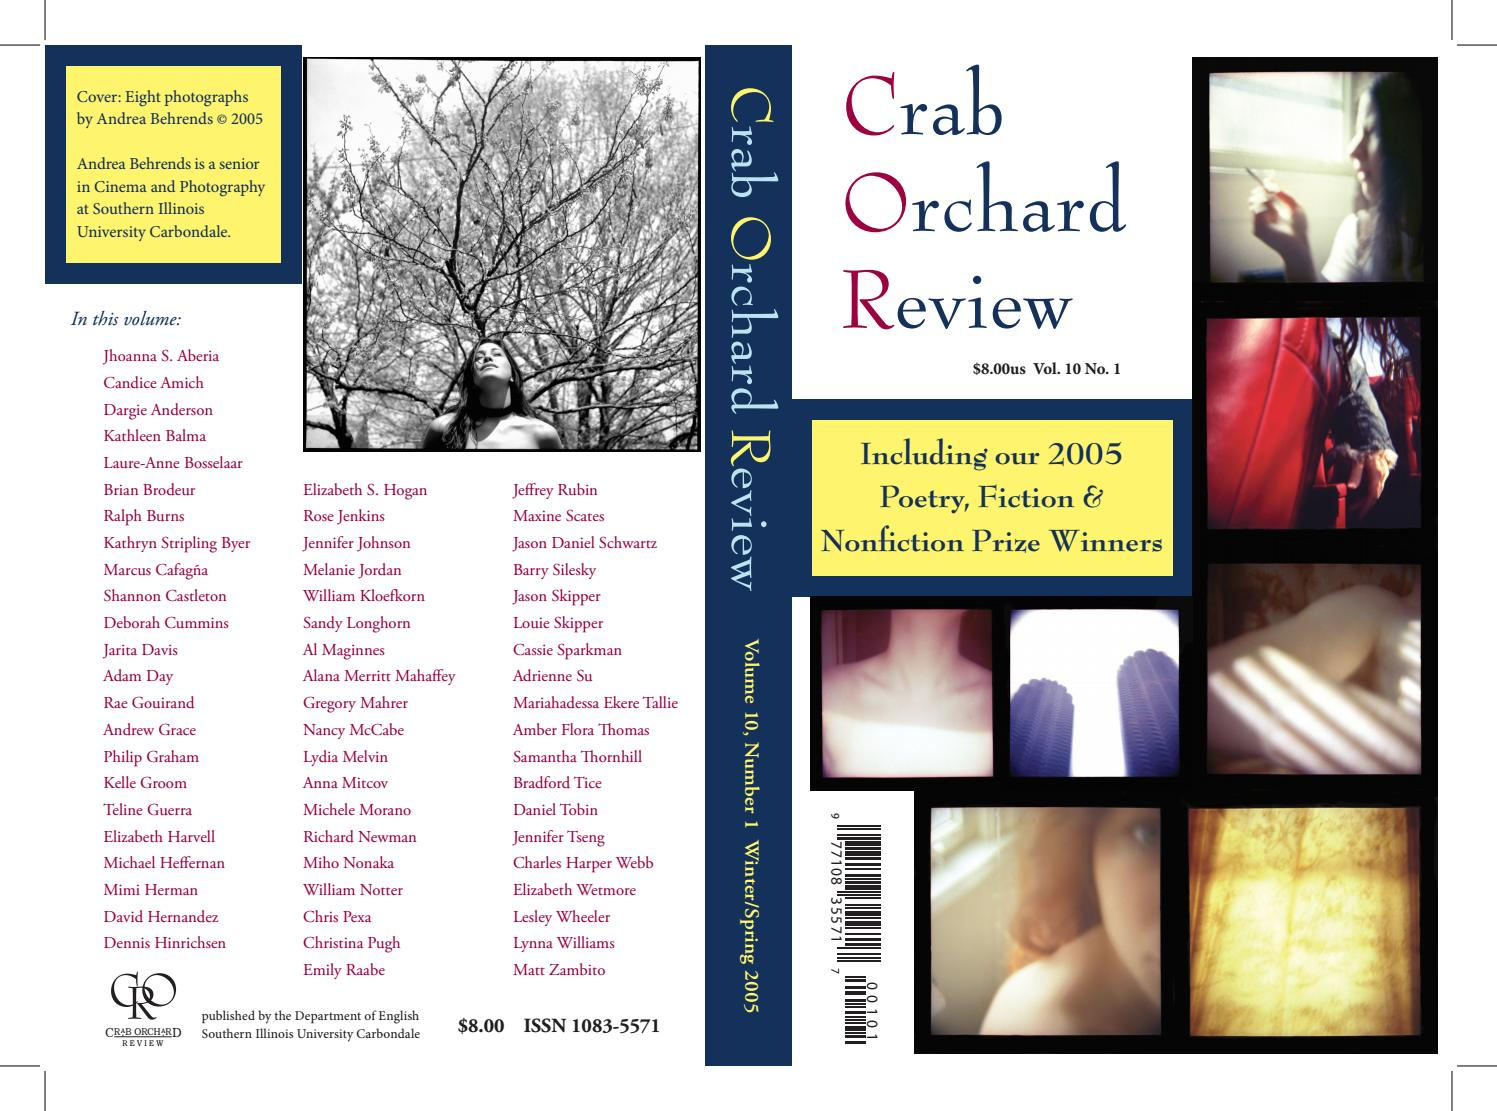 974cb15b94815 Crab Orchard Review Vol 10 No 1 W/S 2005 by Crab Orchard Review - issuu